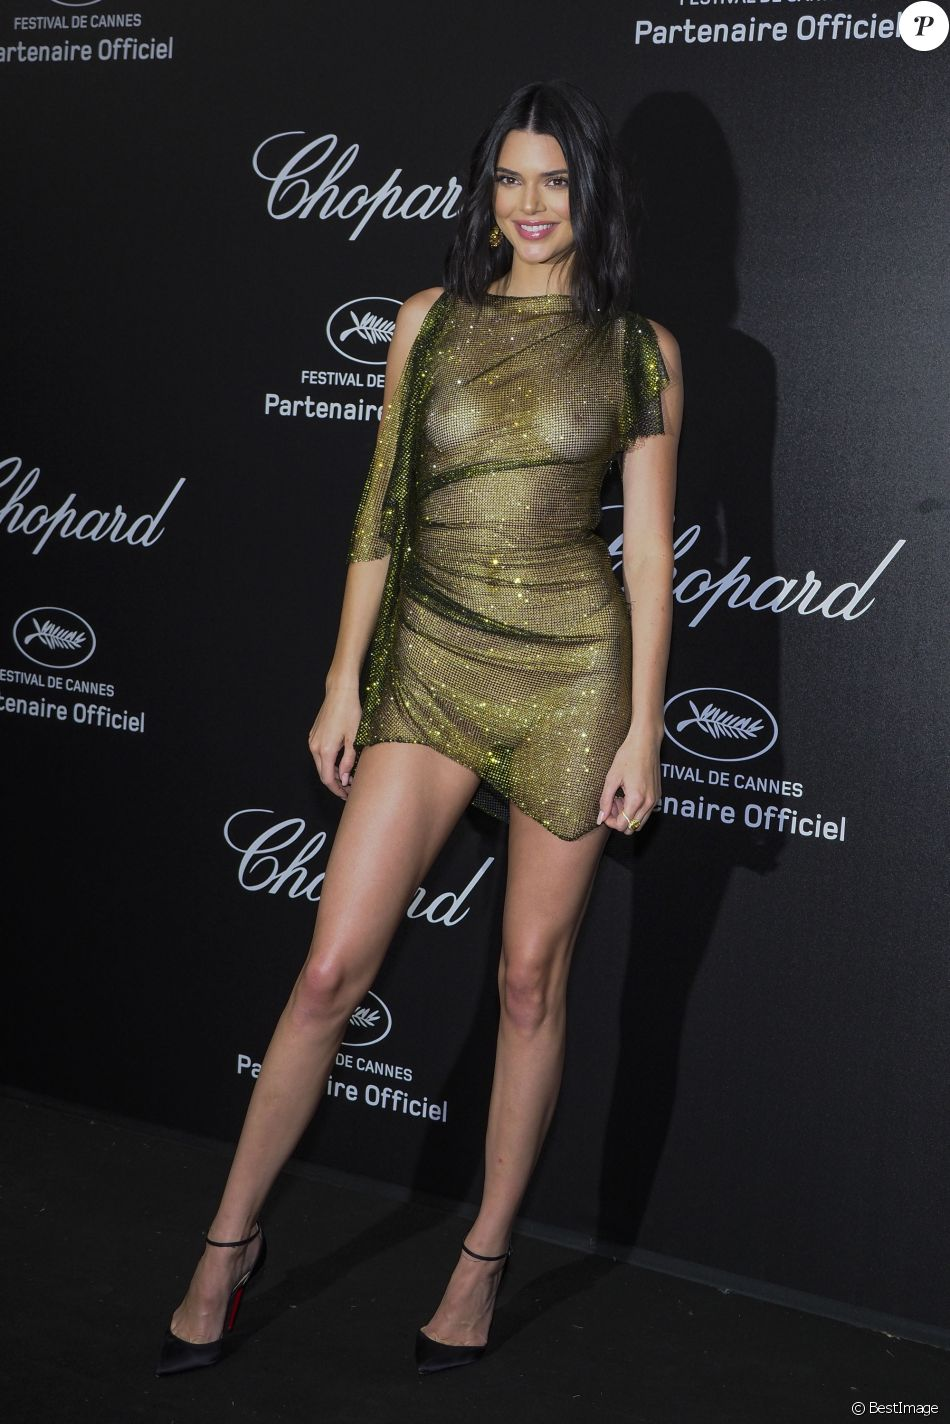 "Kendall Jenner au photocall de la soirée ""Chopard Secret Night"" au Château de la Croix des Gardes lors du 71ème Festival International du Film de Cannes, le 11 mai 2018. © Jacovides-Borde-Moreau/Bestimage Celebrities at the photocall of ""Chopard Secret Night Party"" at the Chateau de la Croix des Gardes during the 71st International Cannes Film Festival. May 11th, 2018.11/05/2018 - Cannes"